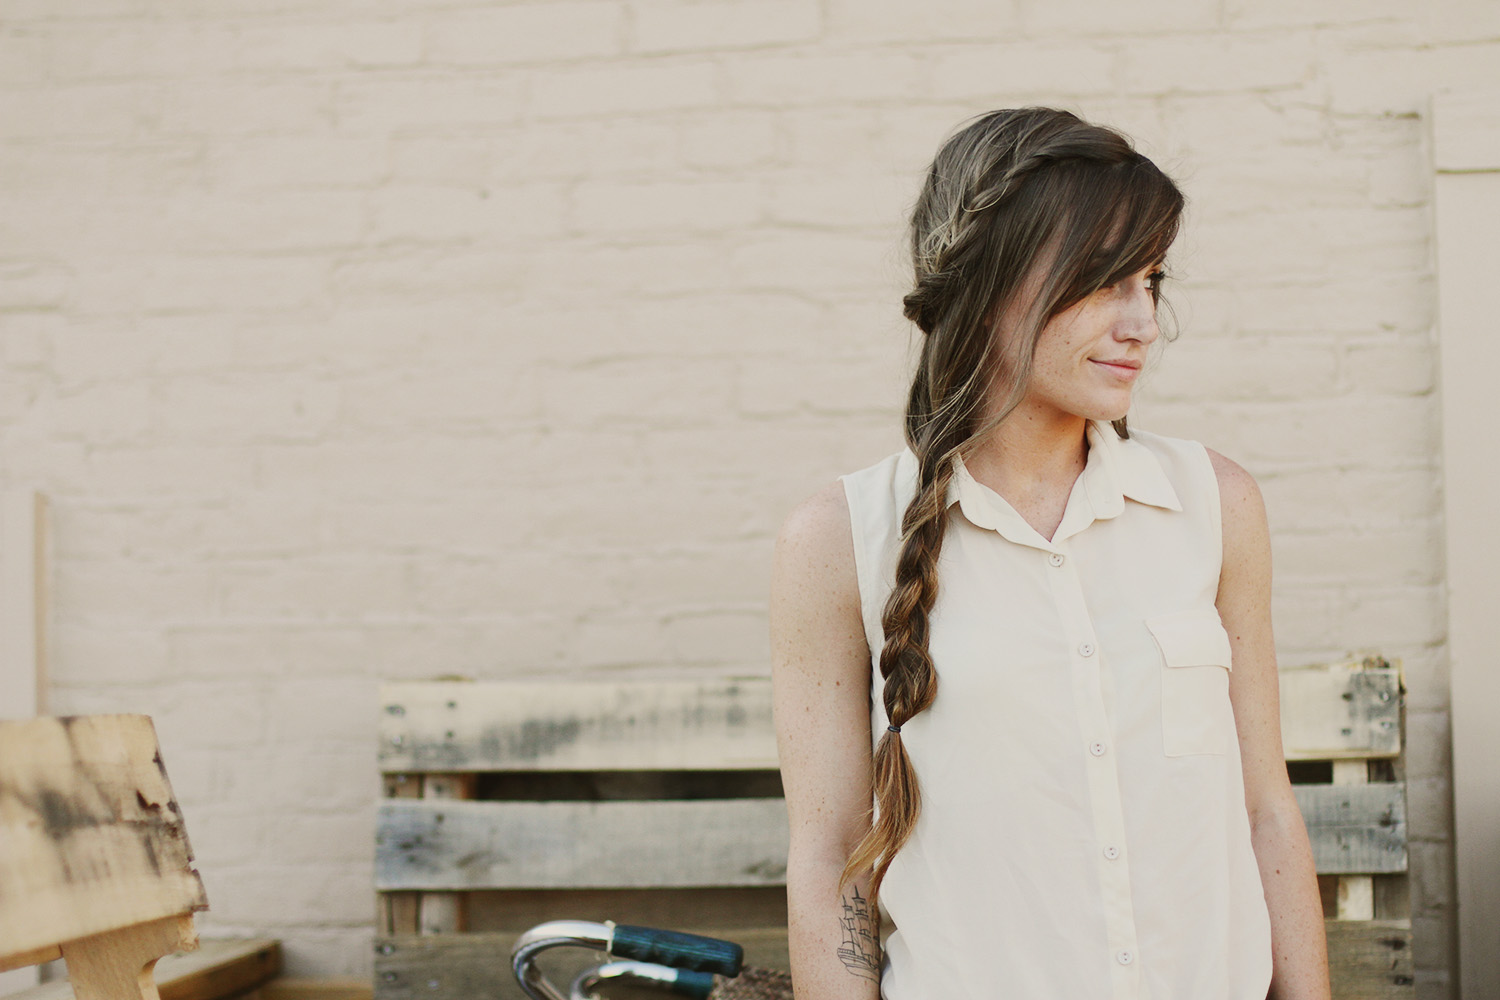 The model with loose Casual Side Braid.